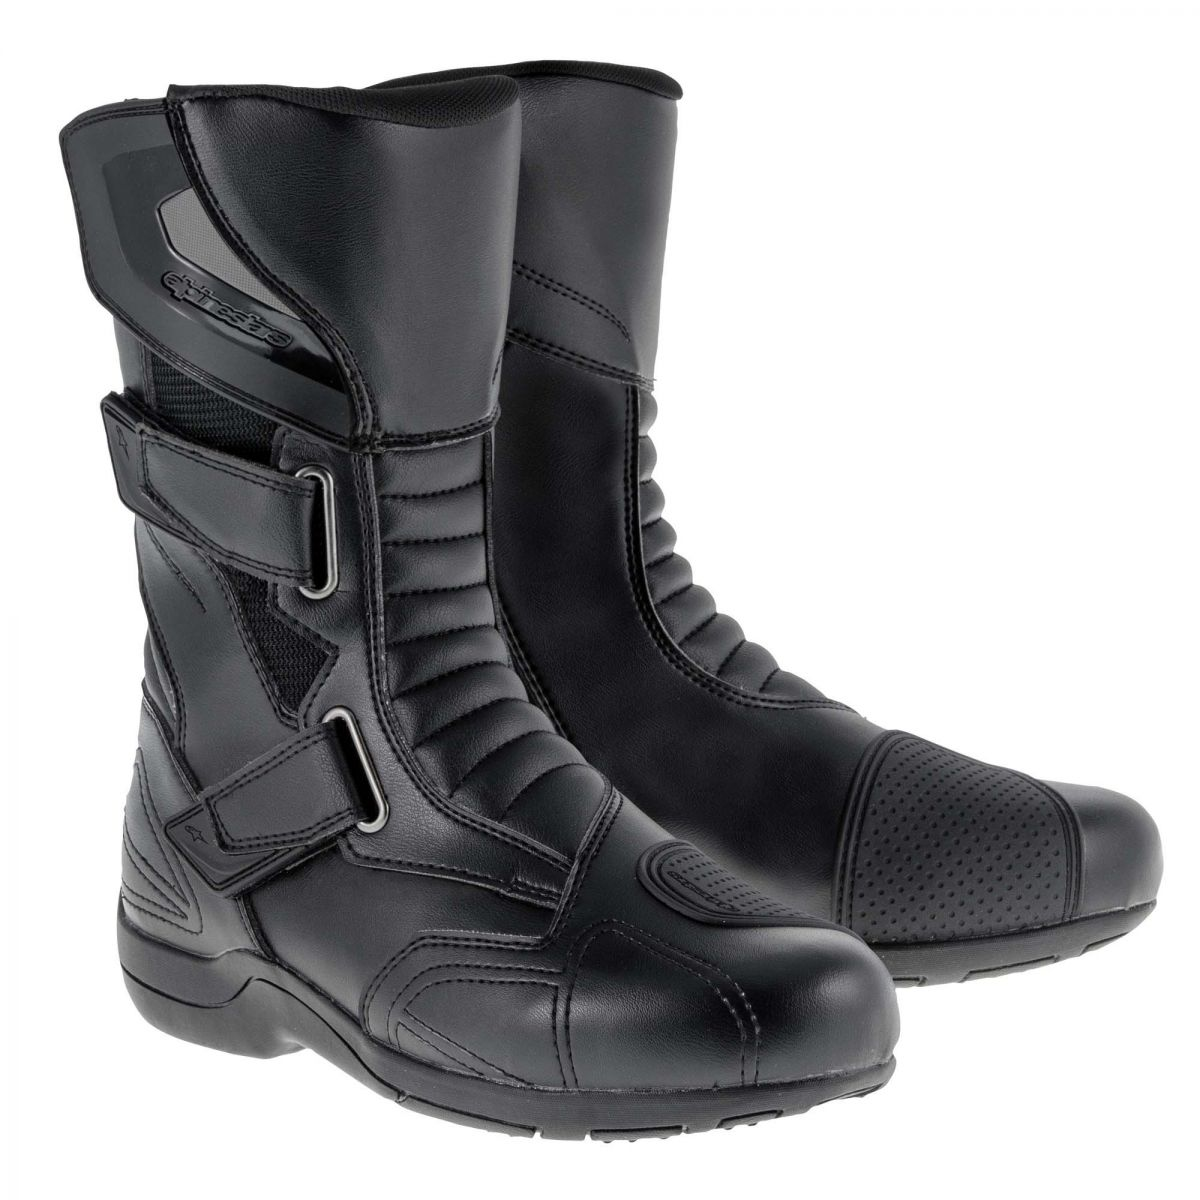 Bota Alpinestars Roam 2 WP New (100% Impermeável)  - Super Bike - Loja Oficial Alpinestars